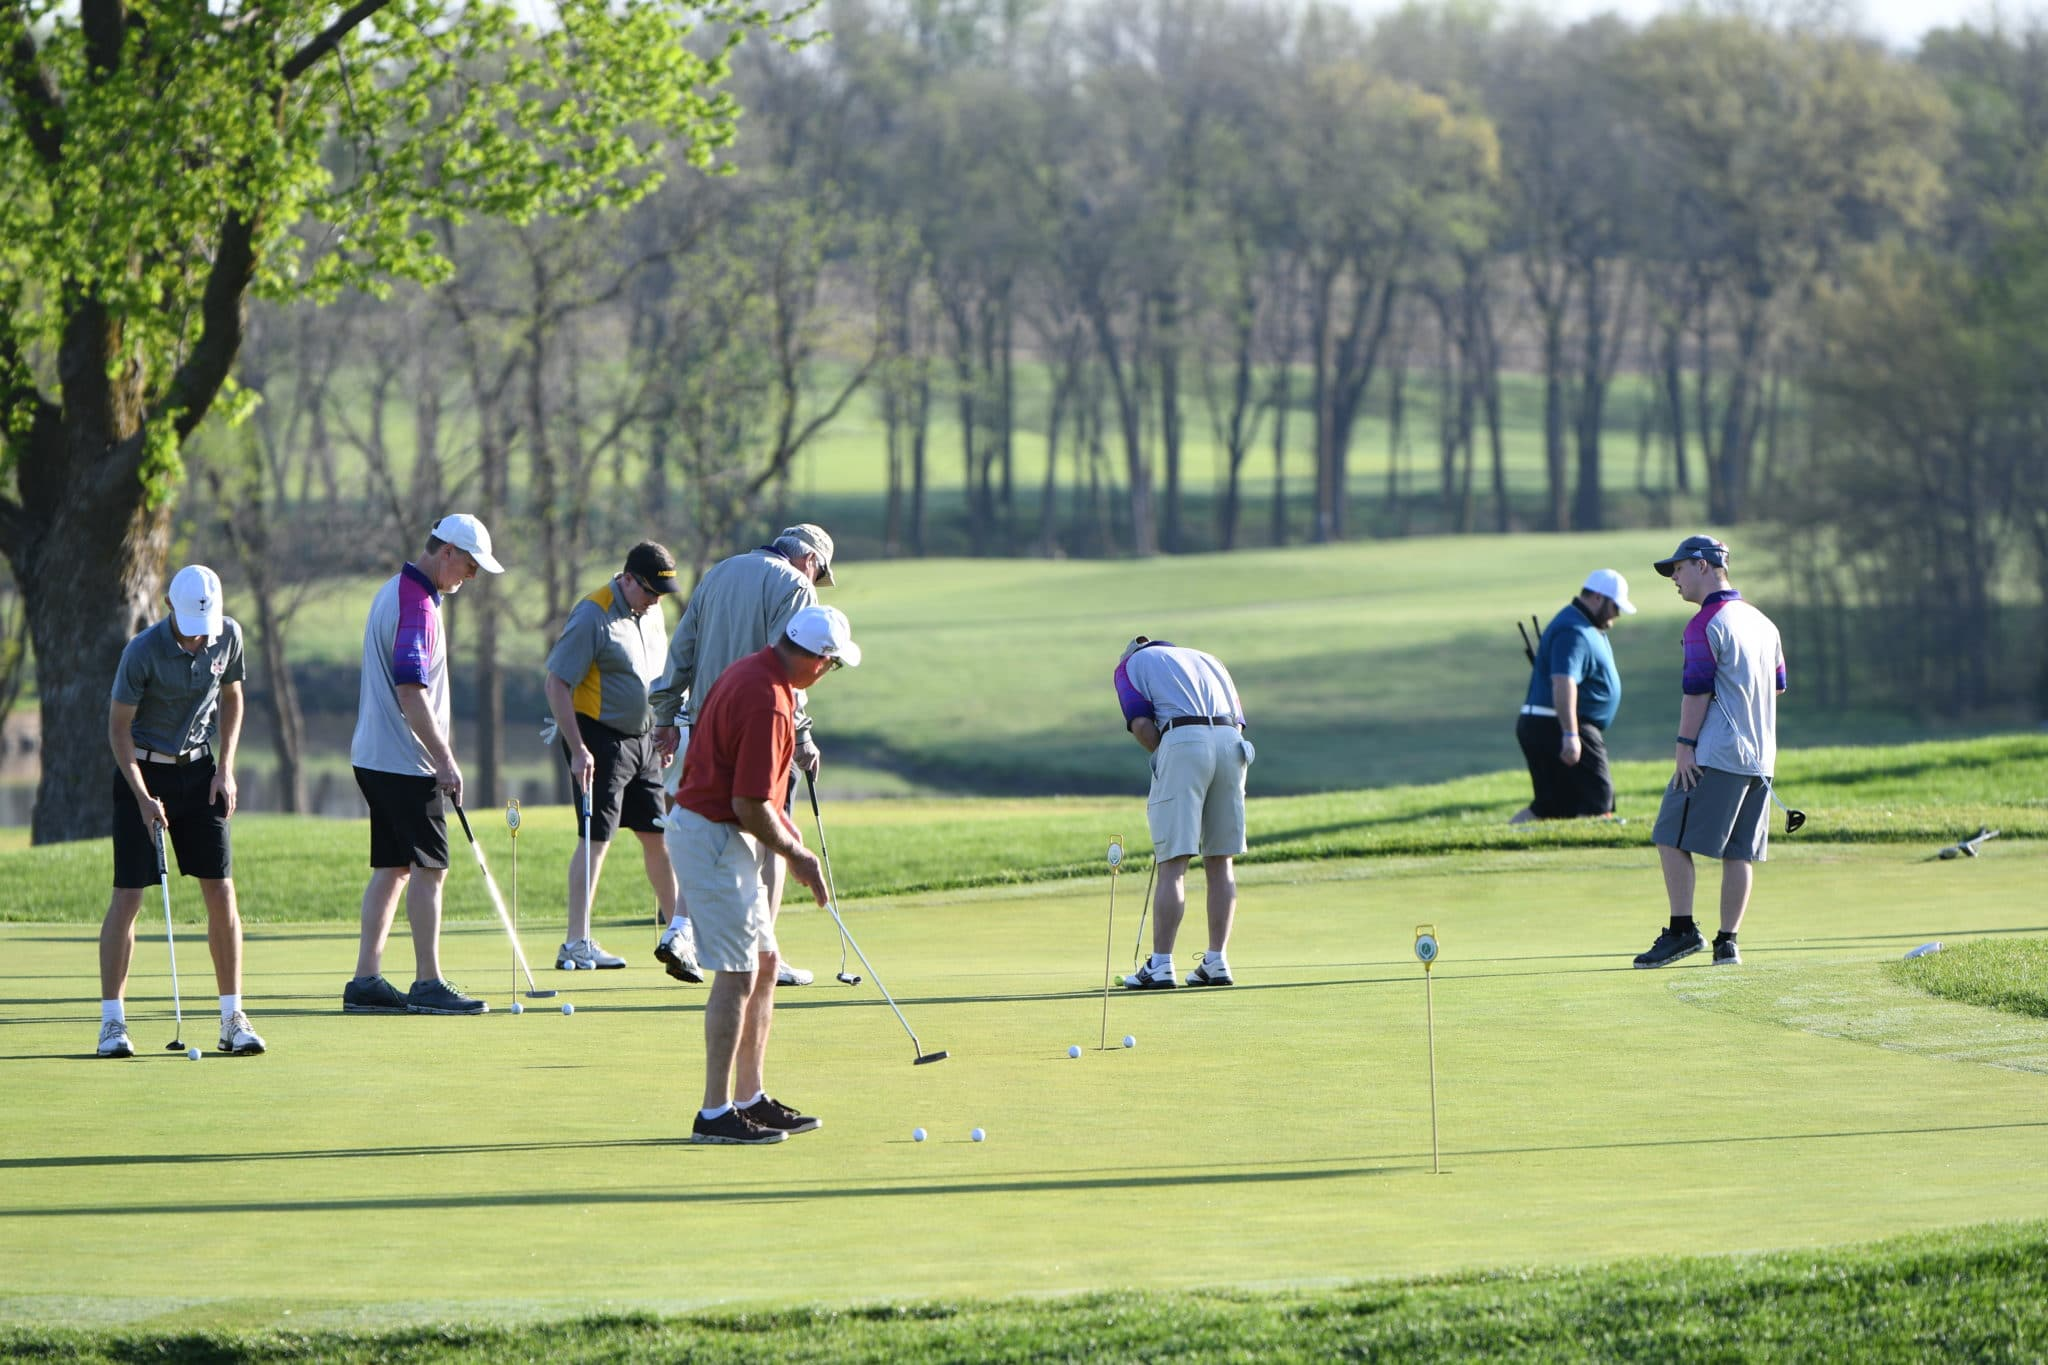 A group of golfers practice putting on a green